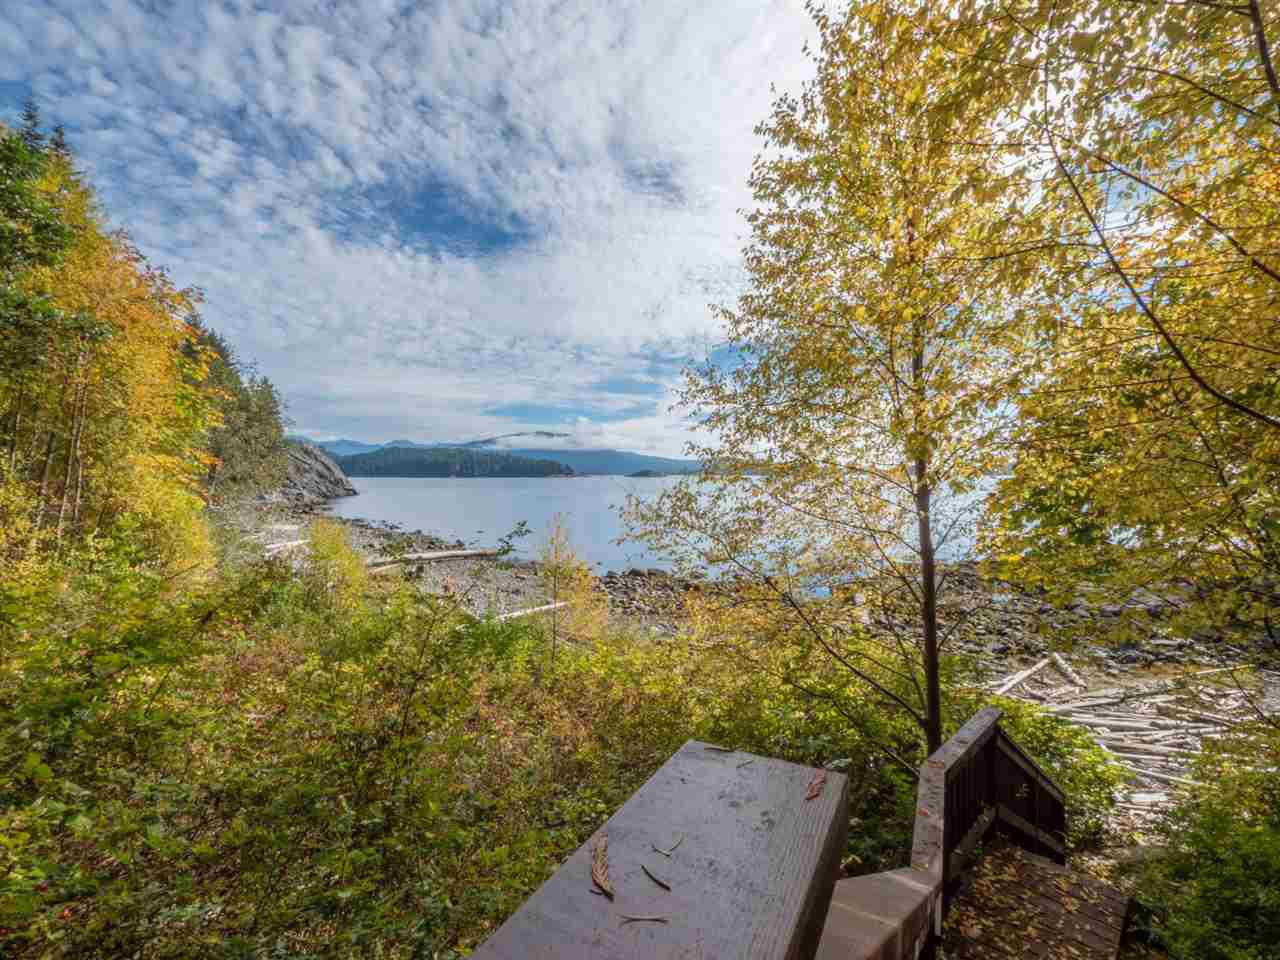 Photo 18: Photos: 877 GOWER POINT Road in Gibsons: Gibsons & Area House for sale (Sunshine Coast)  : MLS®# R2419918